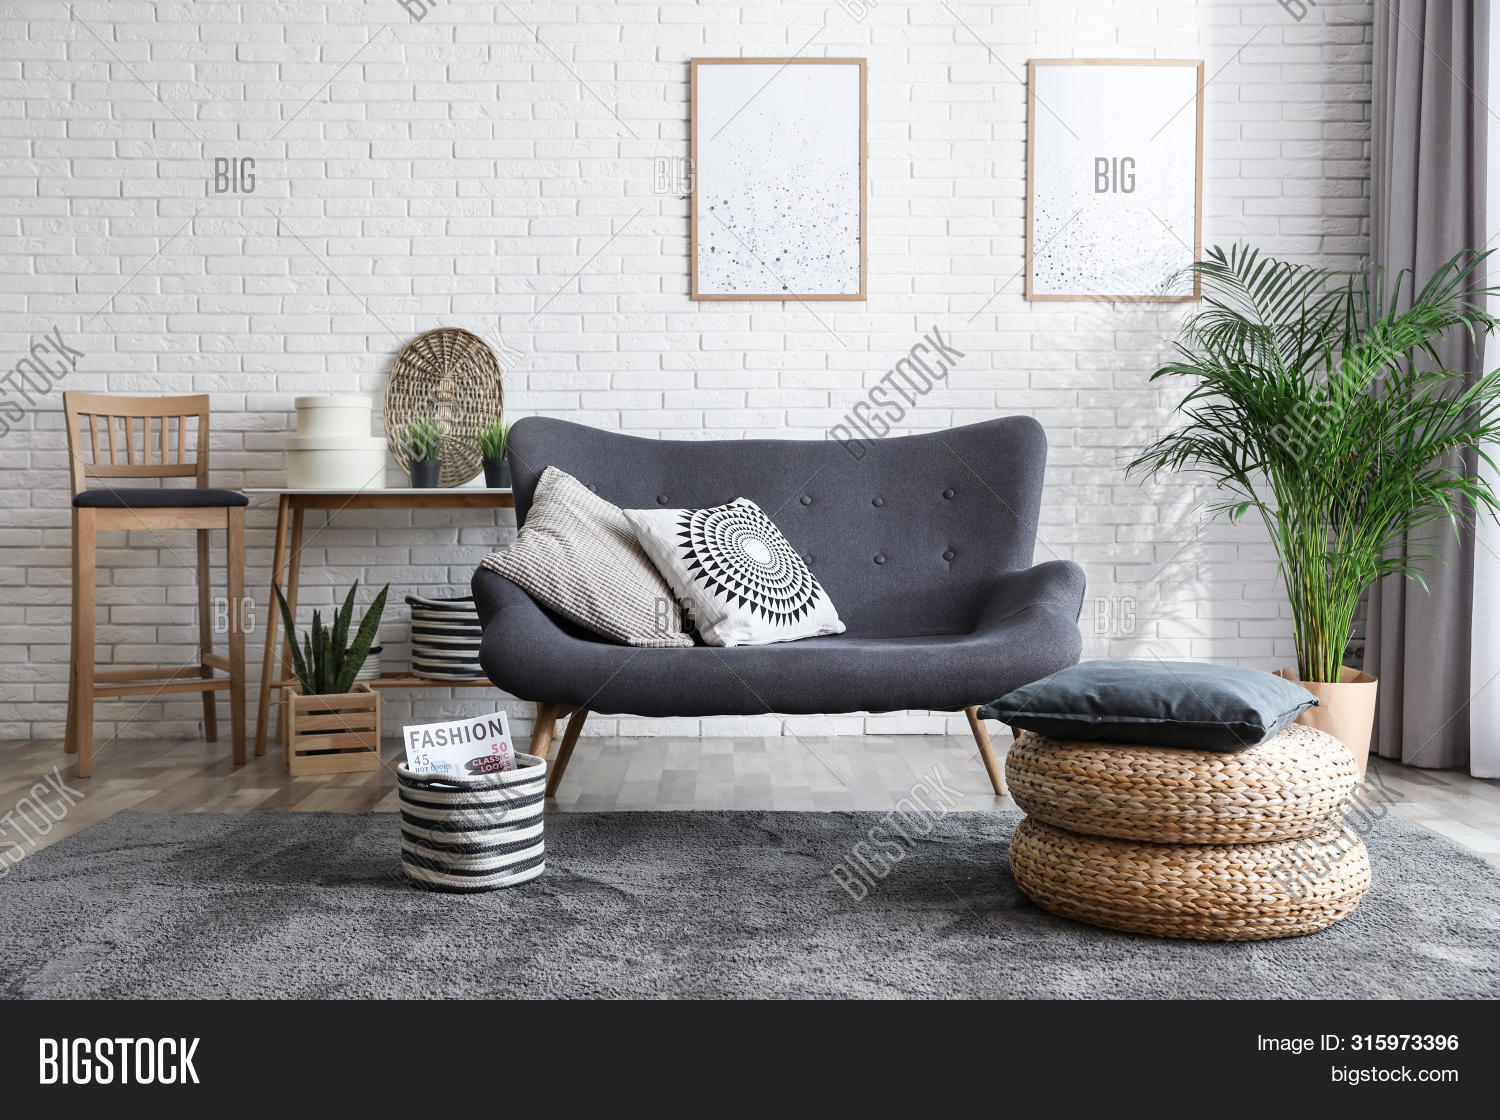 apartment,background,brick,bright,color,comfortable,contemporary,couch,coziness,cozy,decor,decoration,decorative,design,detail,elegant,elements,flat,floor,furniture,home,house,houseplant,idea,indoors,interior,large,lifestyle,living,luxury,modern,nobody,picture,pillow,plant,posters,room,rug,seat,sit,sofa,spacious,style,stylish,table,wall,white,window